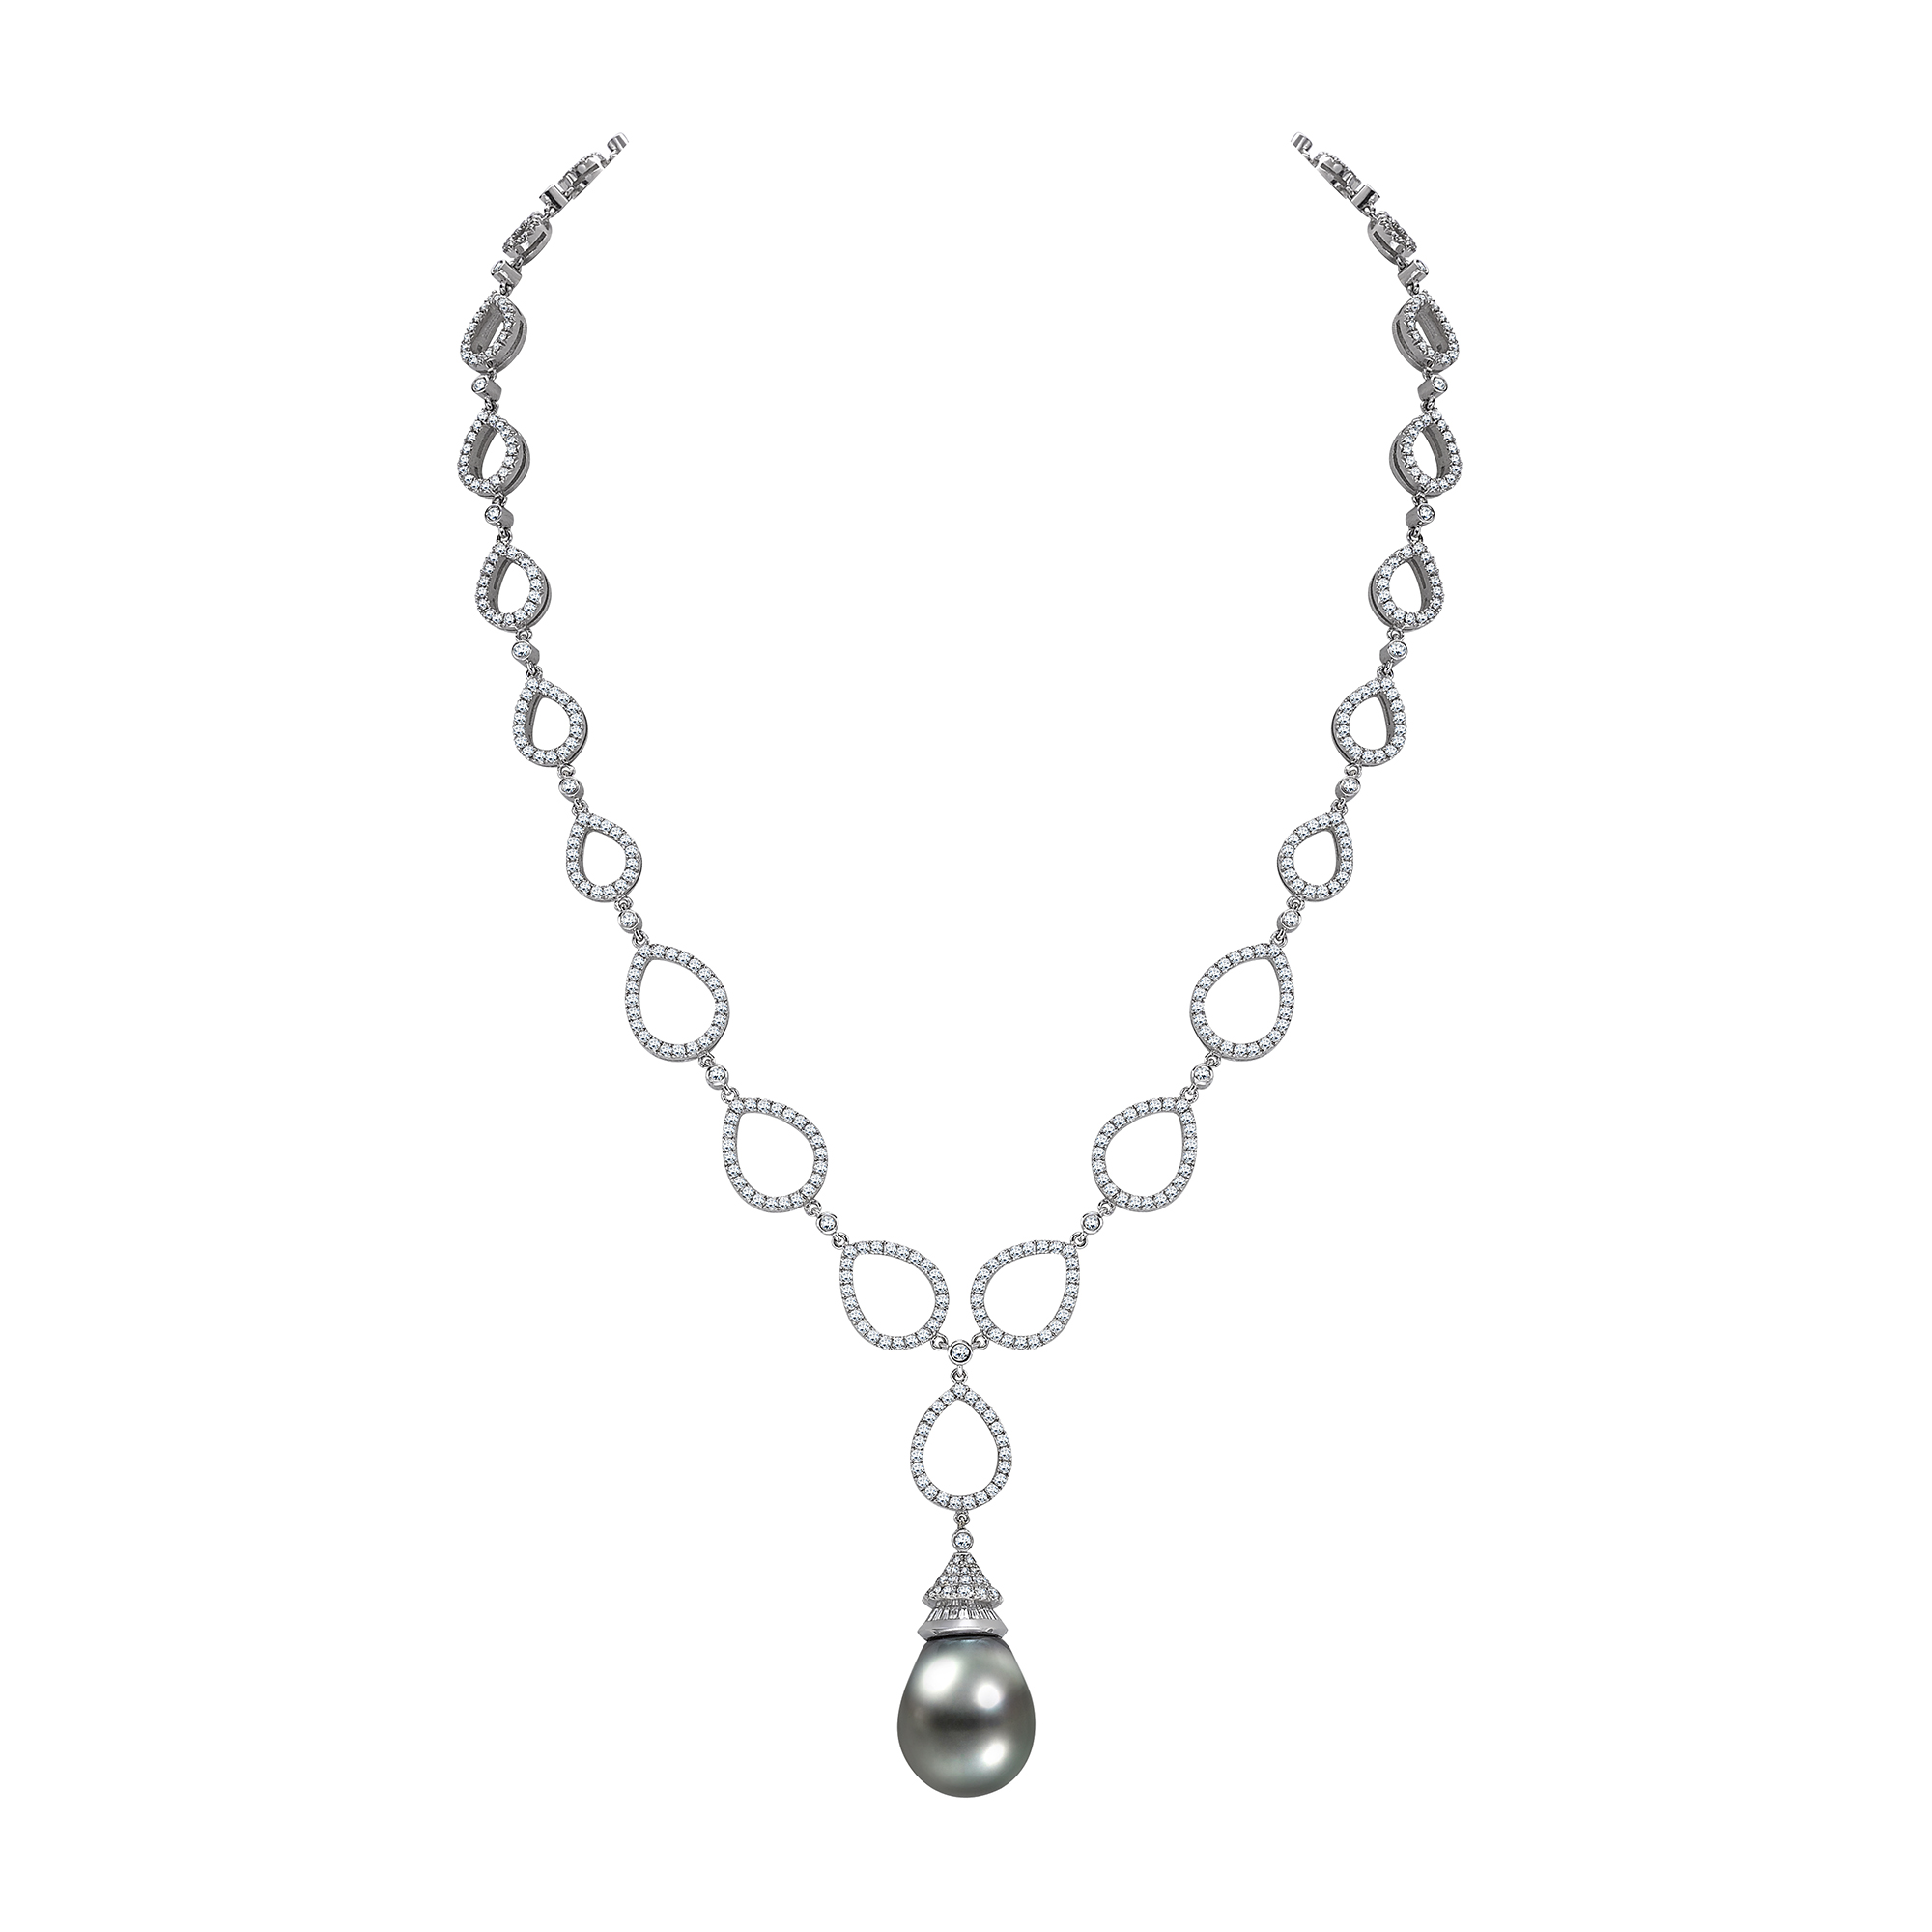 TAHITIAN PEARL DROP ON A BRILLIANT CUT DIAMOND NECKLACE - £25,500  Exquisite grain set brilliant cut diamond fancy link tear shaped necklet featuring a Tahitian pearl capped with twenty-two baguette cut diamonds and set in white gold. The Tahitian or black pearl is an organic gem deriving its name from the fact that they are primarily cultivated around the islands of French Polynesia near to Tahiti.  CONTACT - pragnell.co.uk | enquiries@pragnell.co.uk